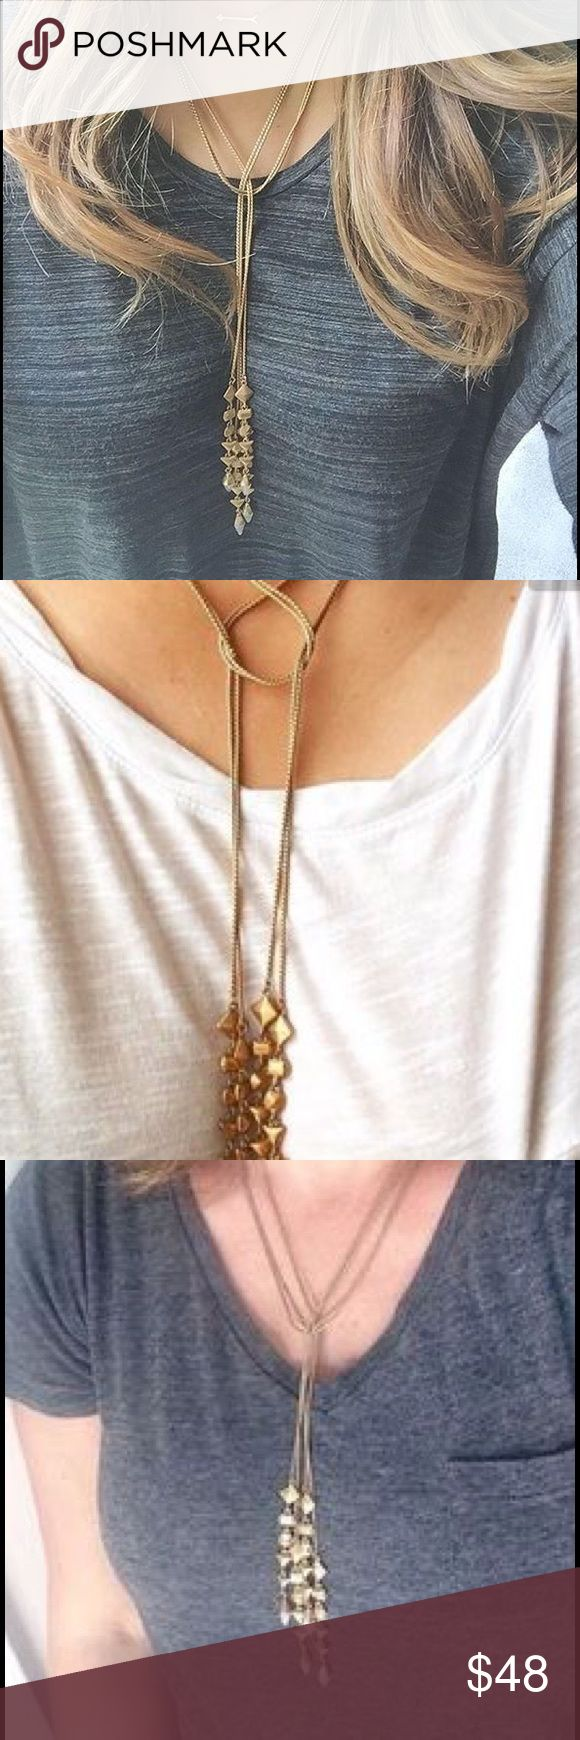 Stella and Dot Brynn Lariat Necklace Brand new with box. Can be worn several ways. Goes with everything! Stella & Dot Jewelry Necklaces